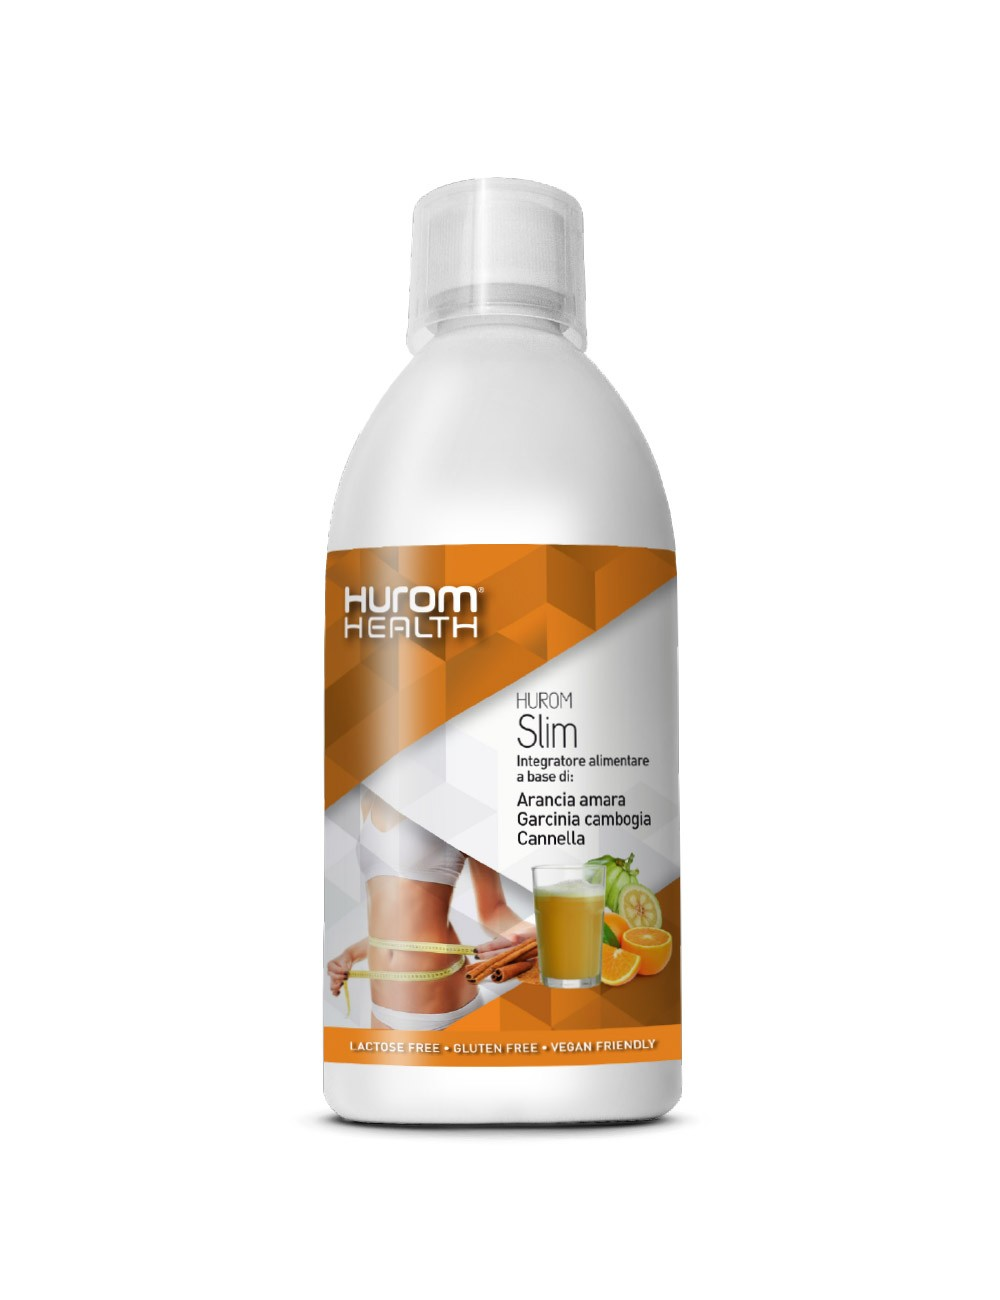 Hurom Slim 500ml - Sempredisponibile.it